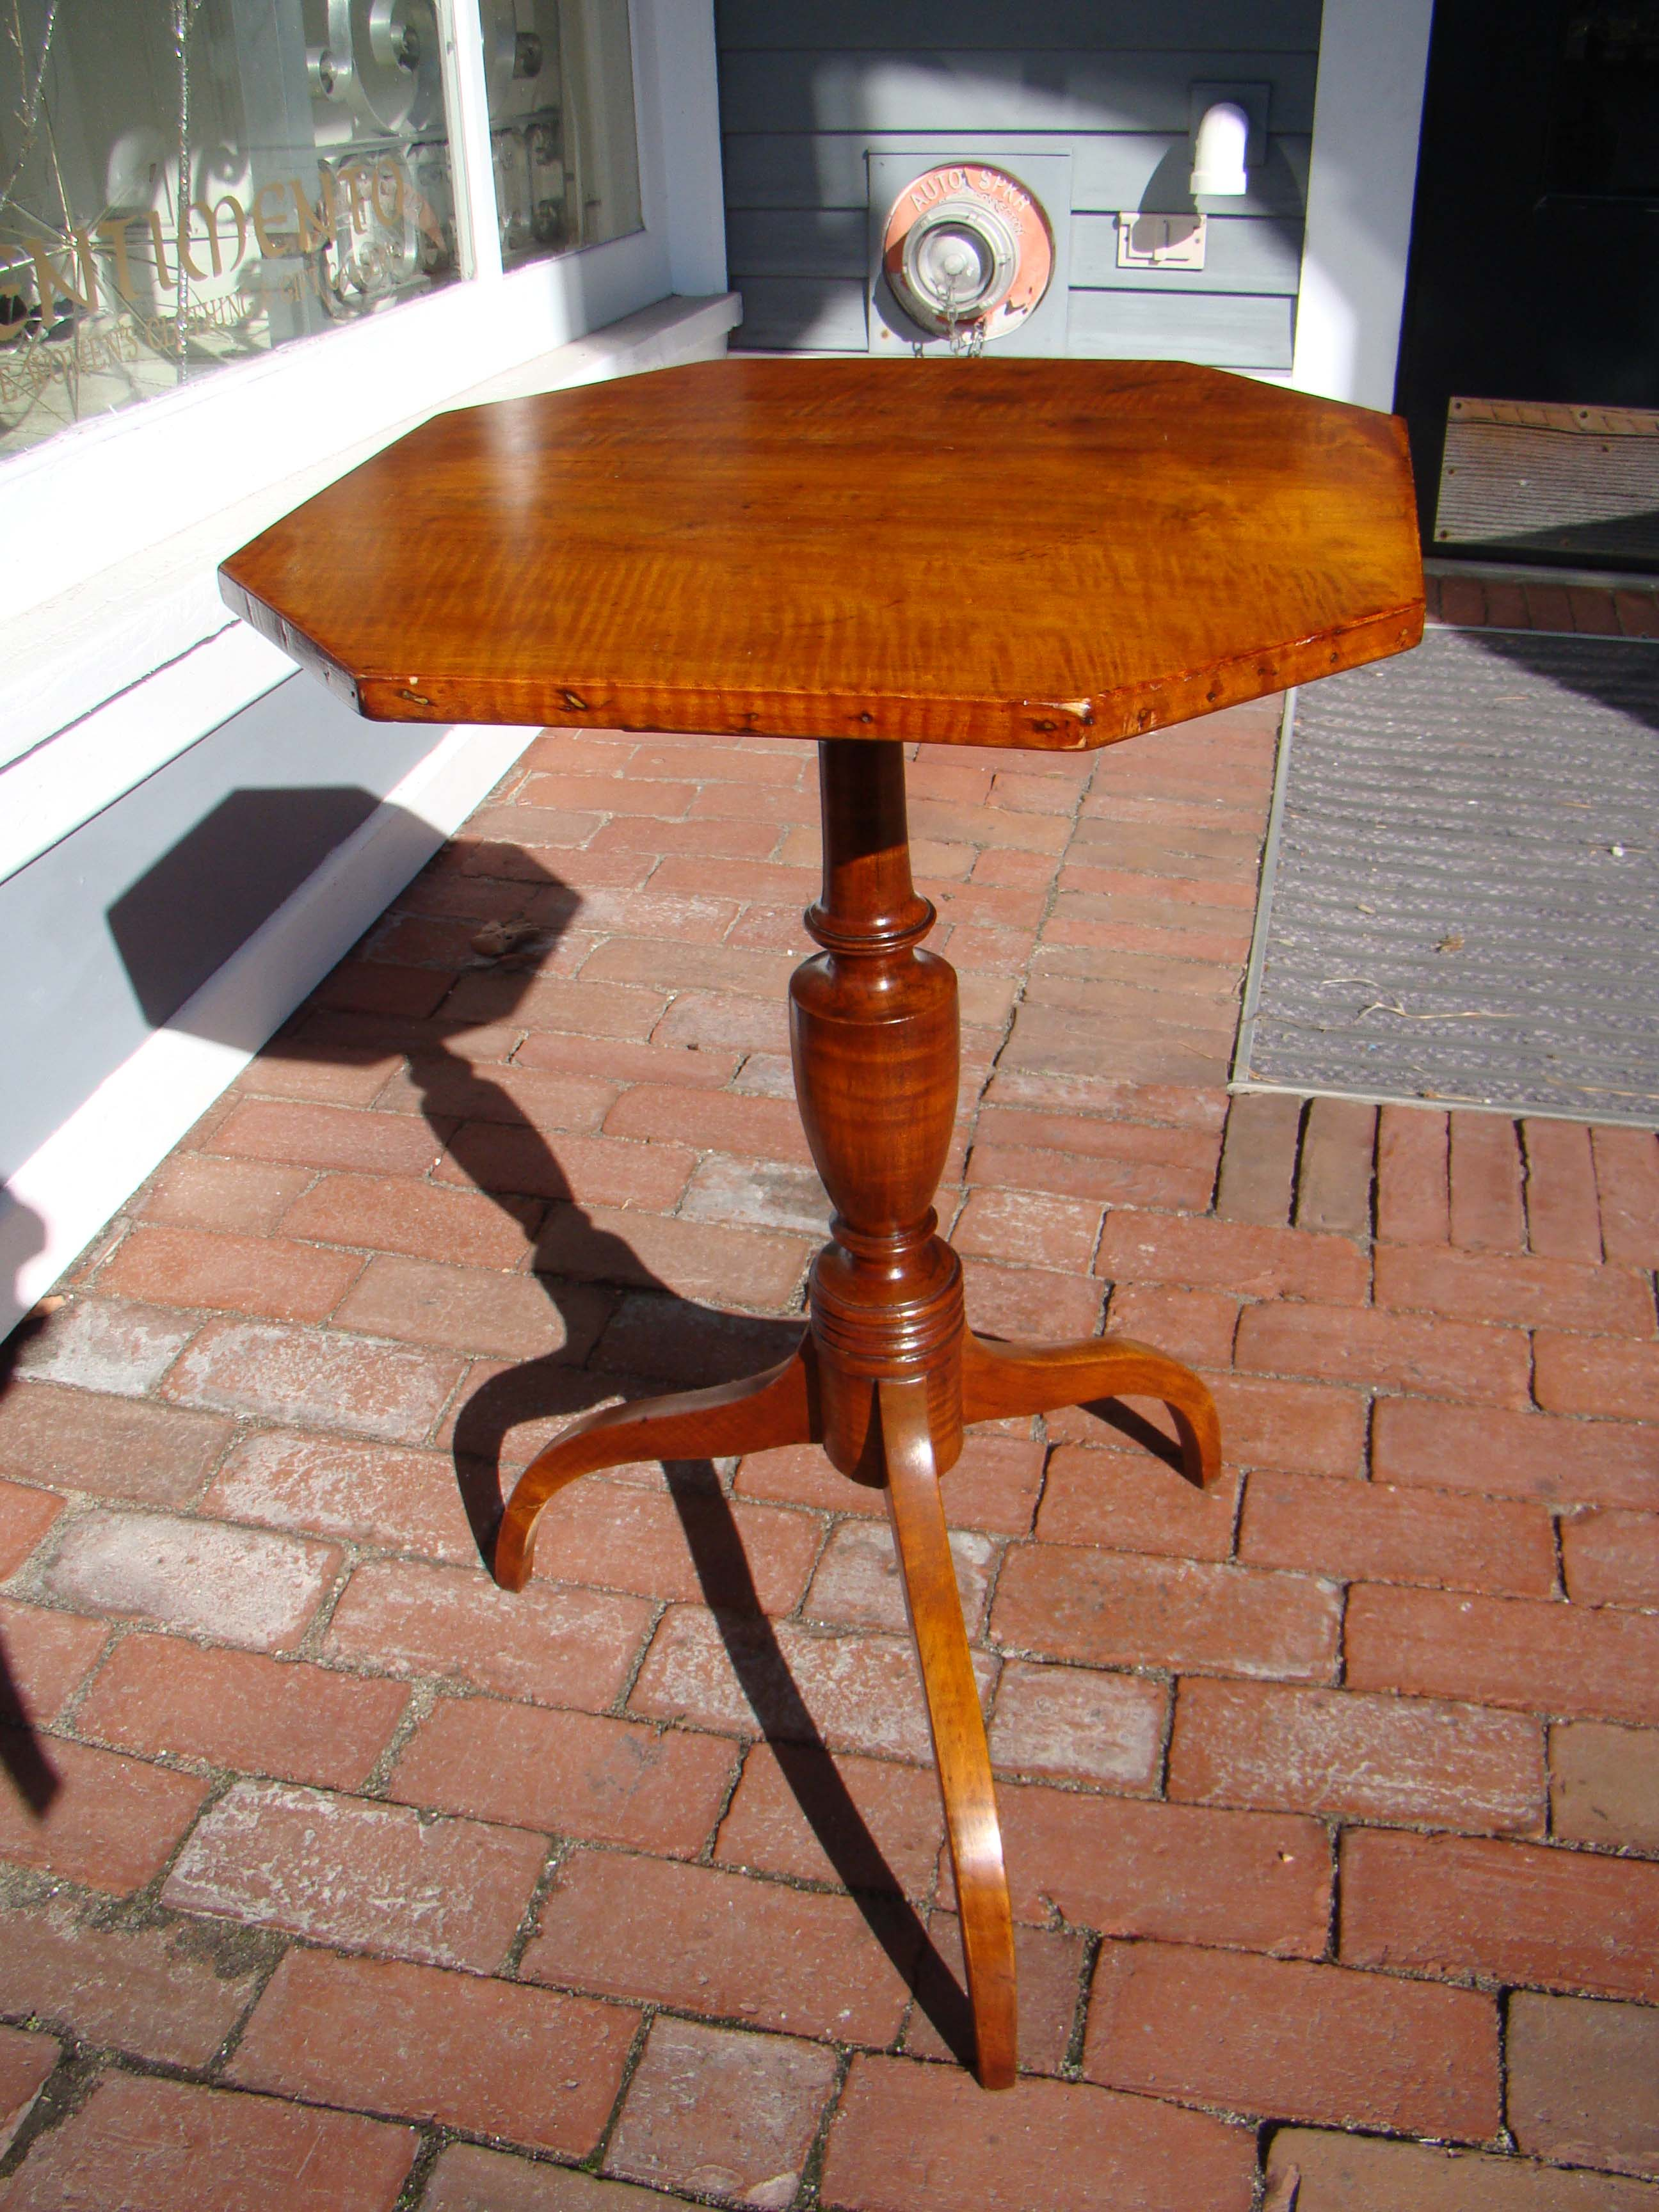 click to view larger image of A beautiful early 19th century New England tiger maple candle stand with octagonal top circa 1810